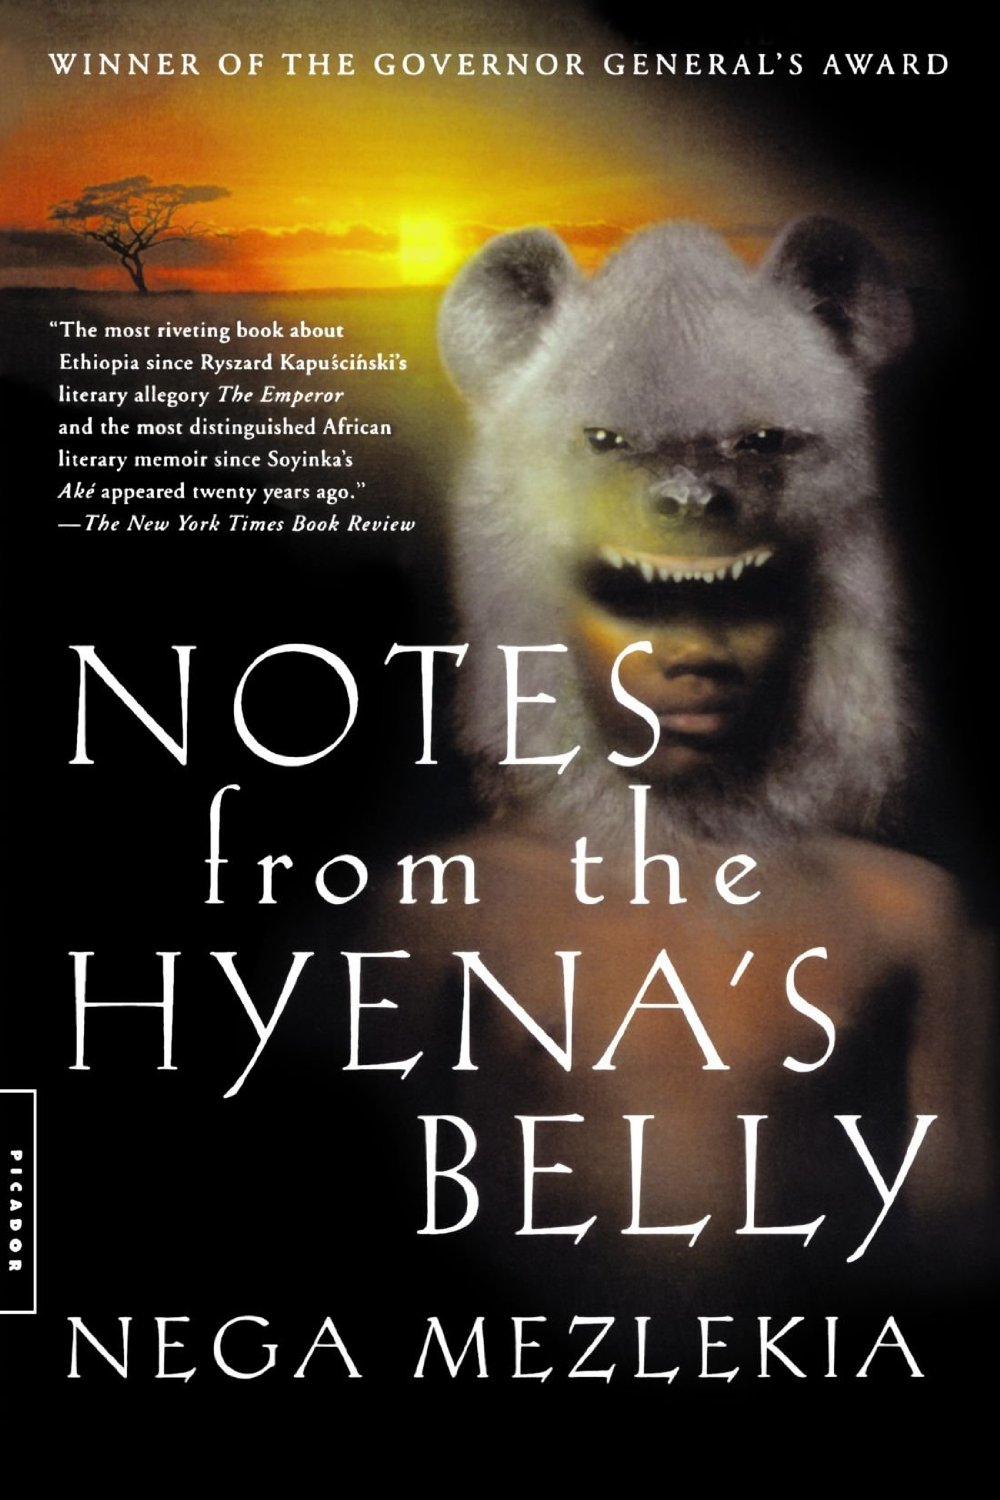 Notes from the Hyena's Belly.jpg